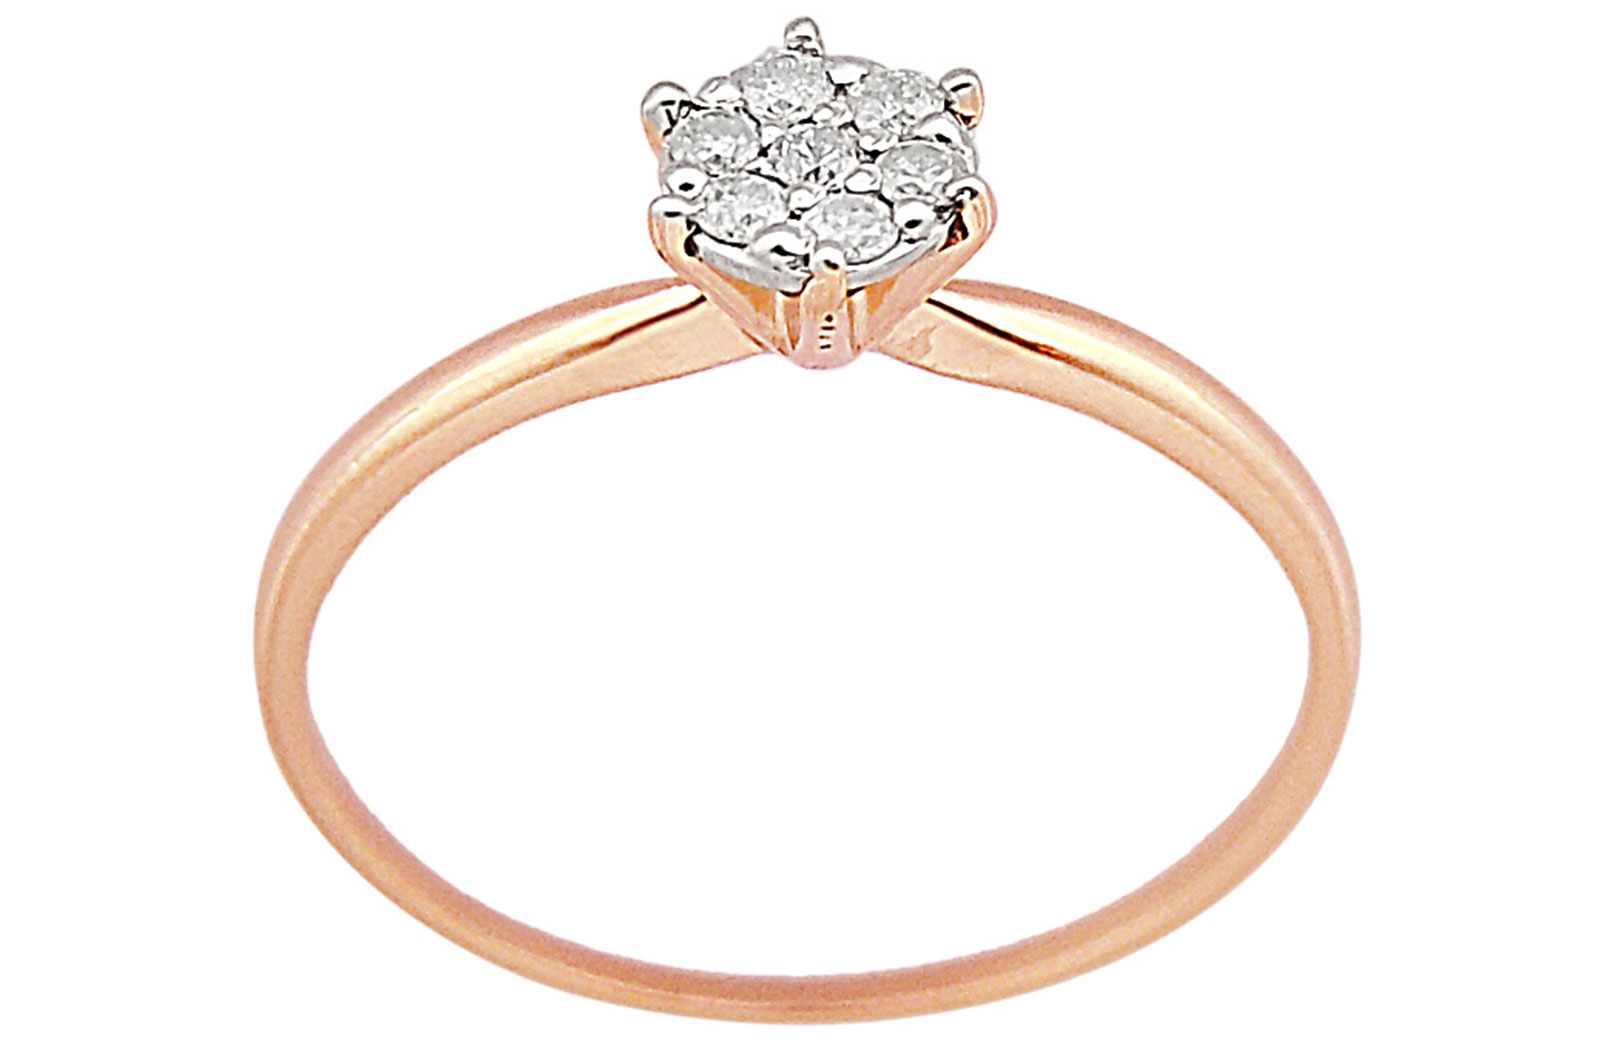 Vera Perla  18K Solid Rose Gold 0.07Cts Genuine Diamonds  Solitaire Ring